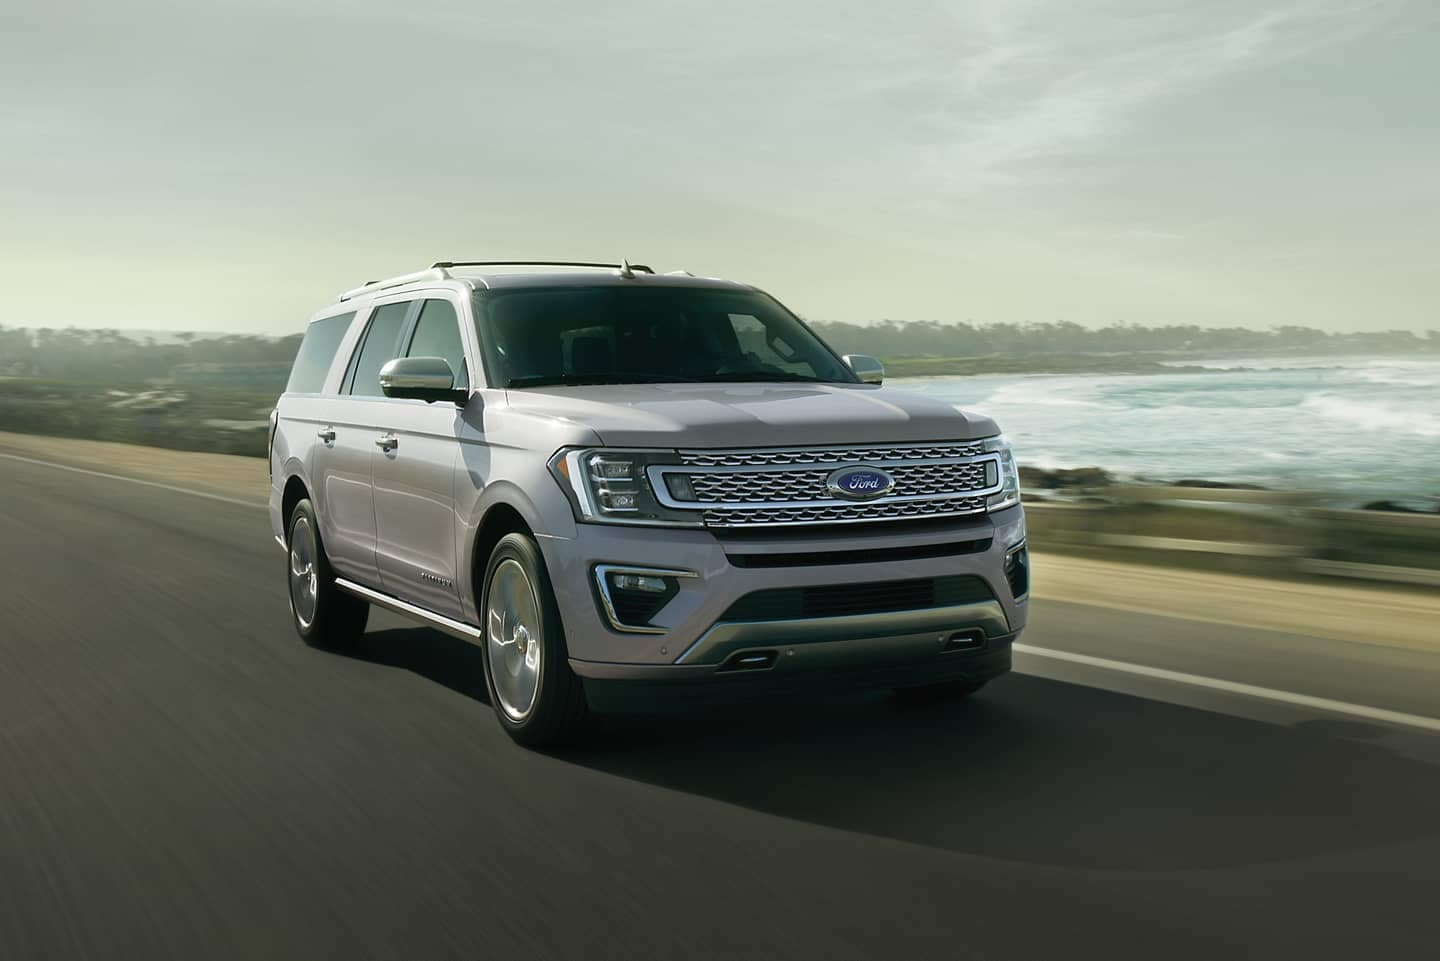 Ford Expedition drives on seashore highway